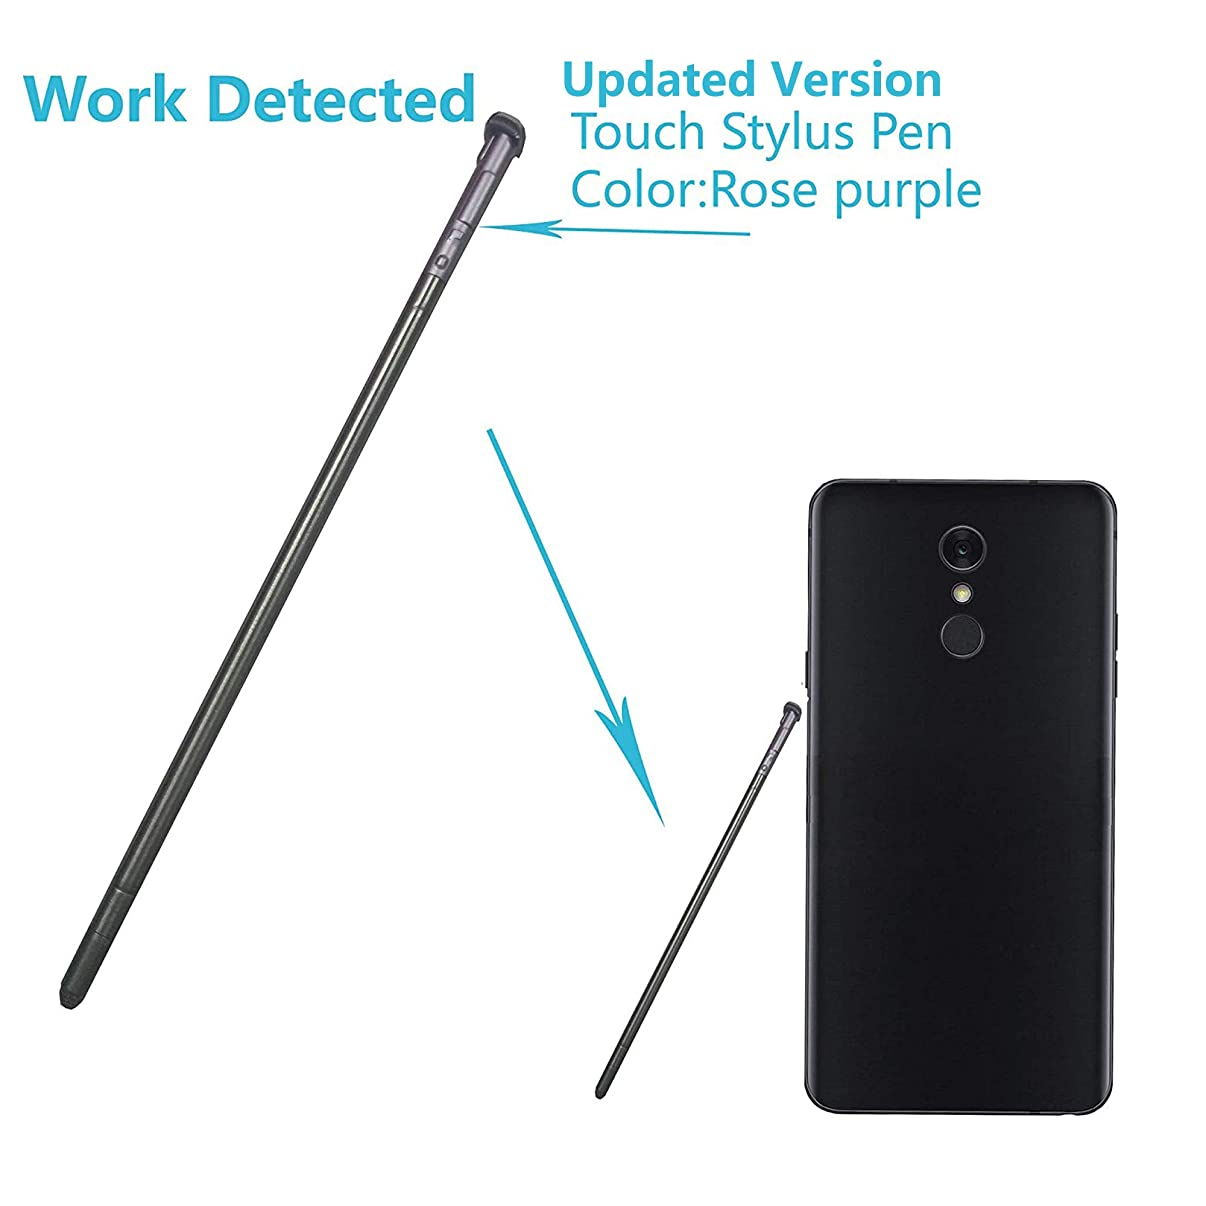 Alovexiong Rose Purple Touch Pen Screen Stylus Pen Can be Detected Replacement Parts for LG Stylo 4,Q Stylus,Q Stylus+,Q Stylus Plus,Stylus 4,Q Stylo 4,LG Q8